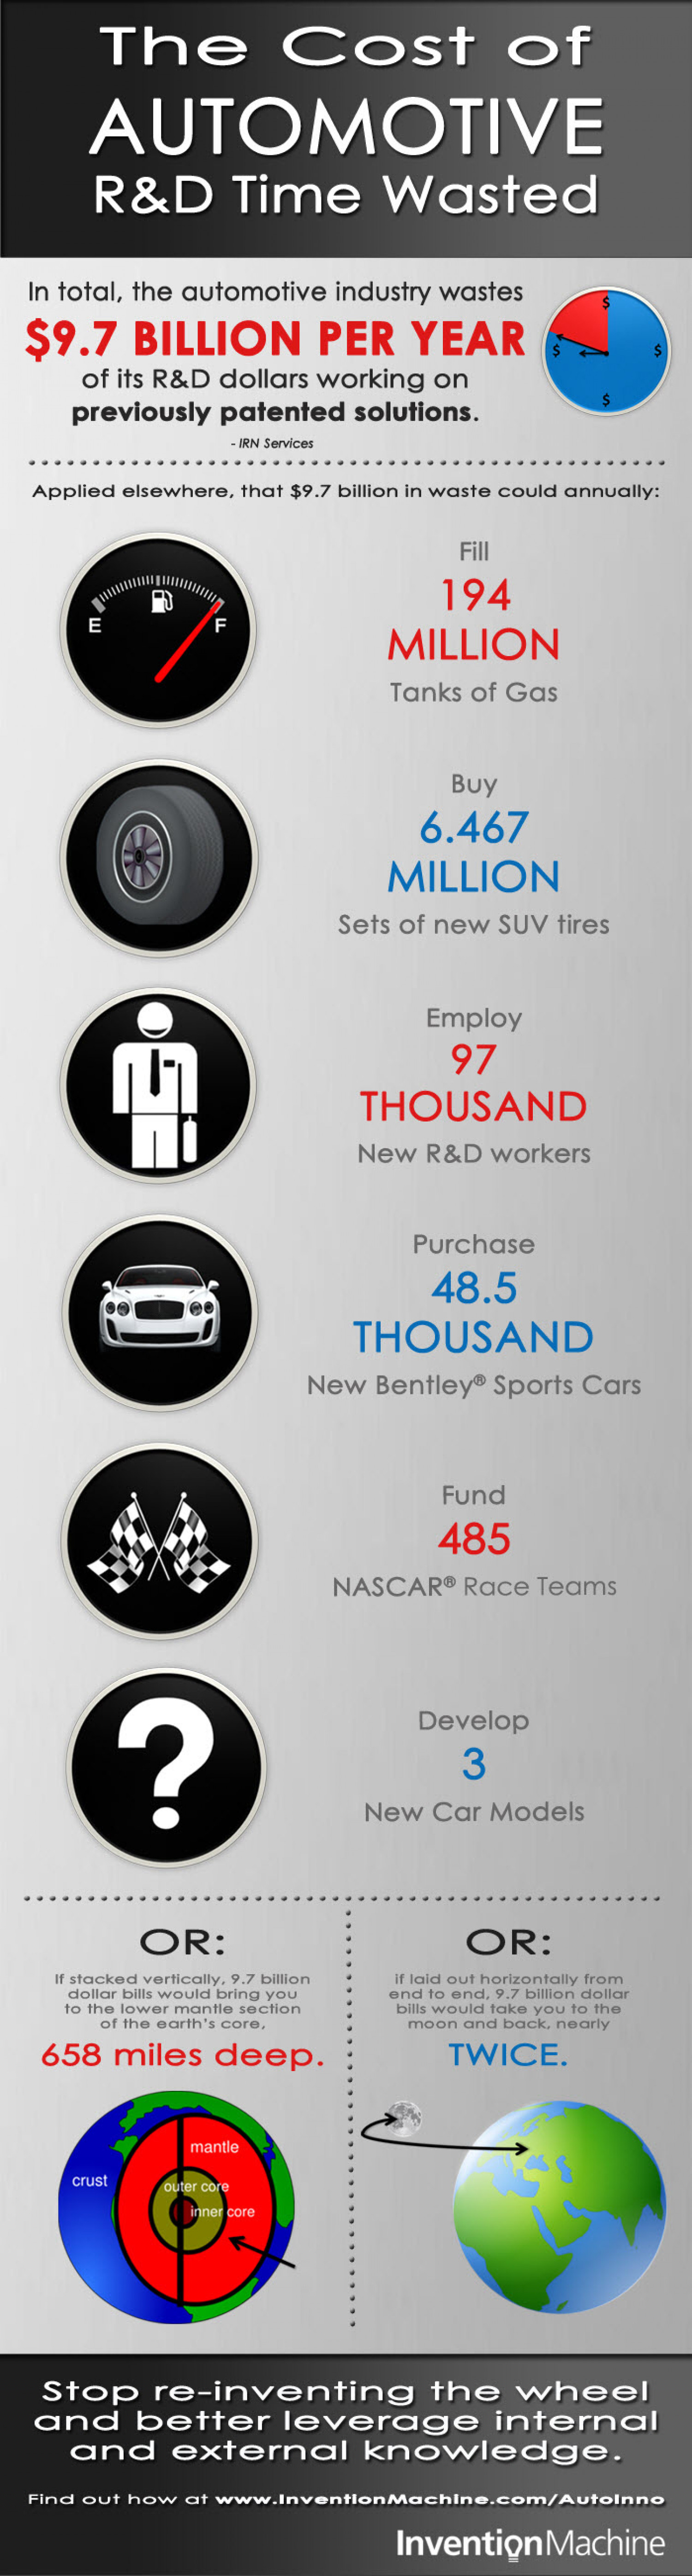 The High Cost of Automotive Research & Development Time Wasted Infographic